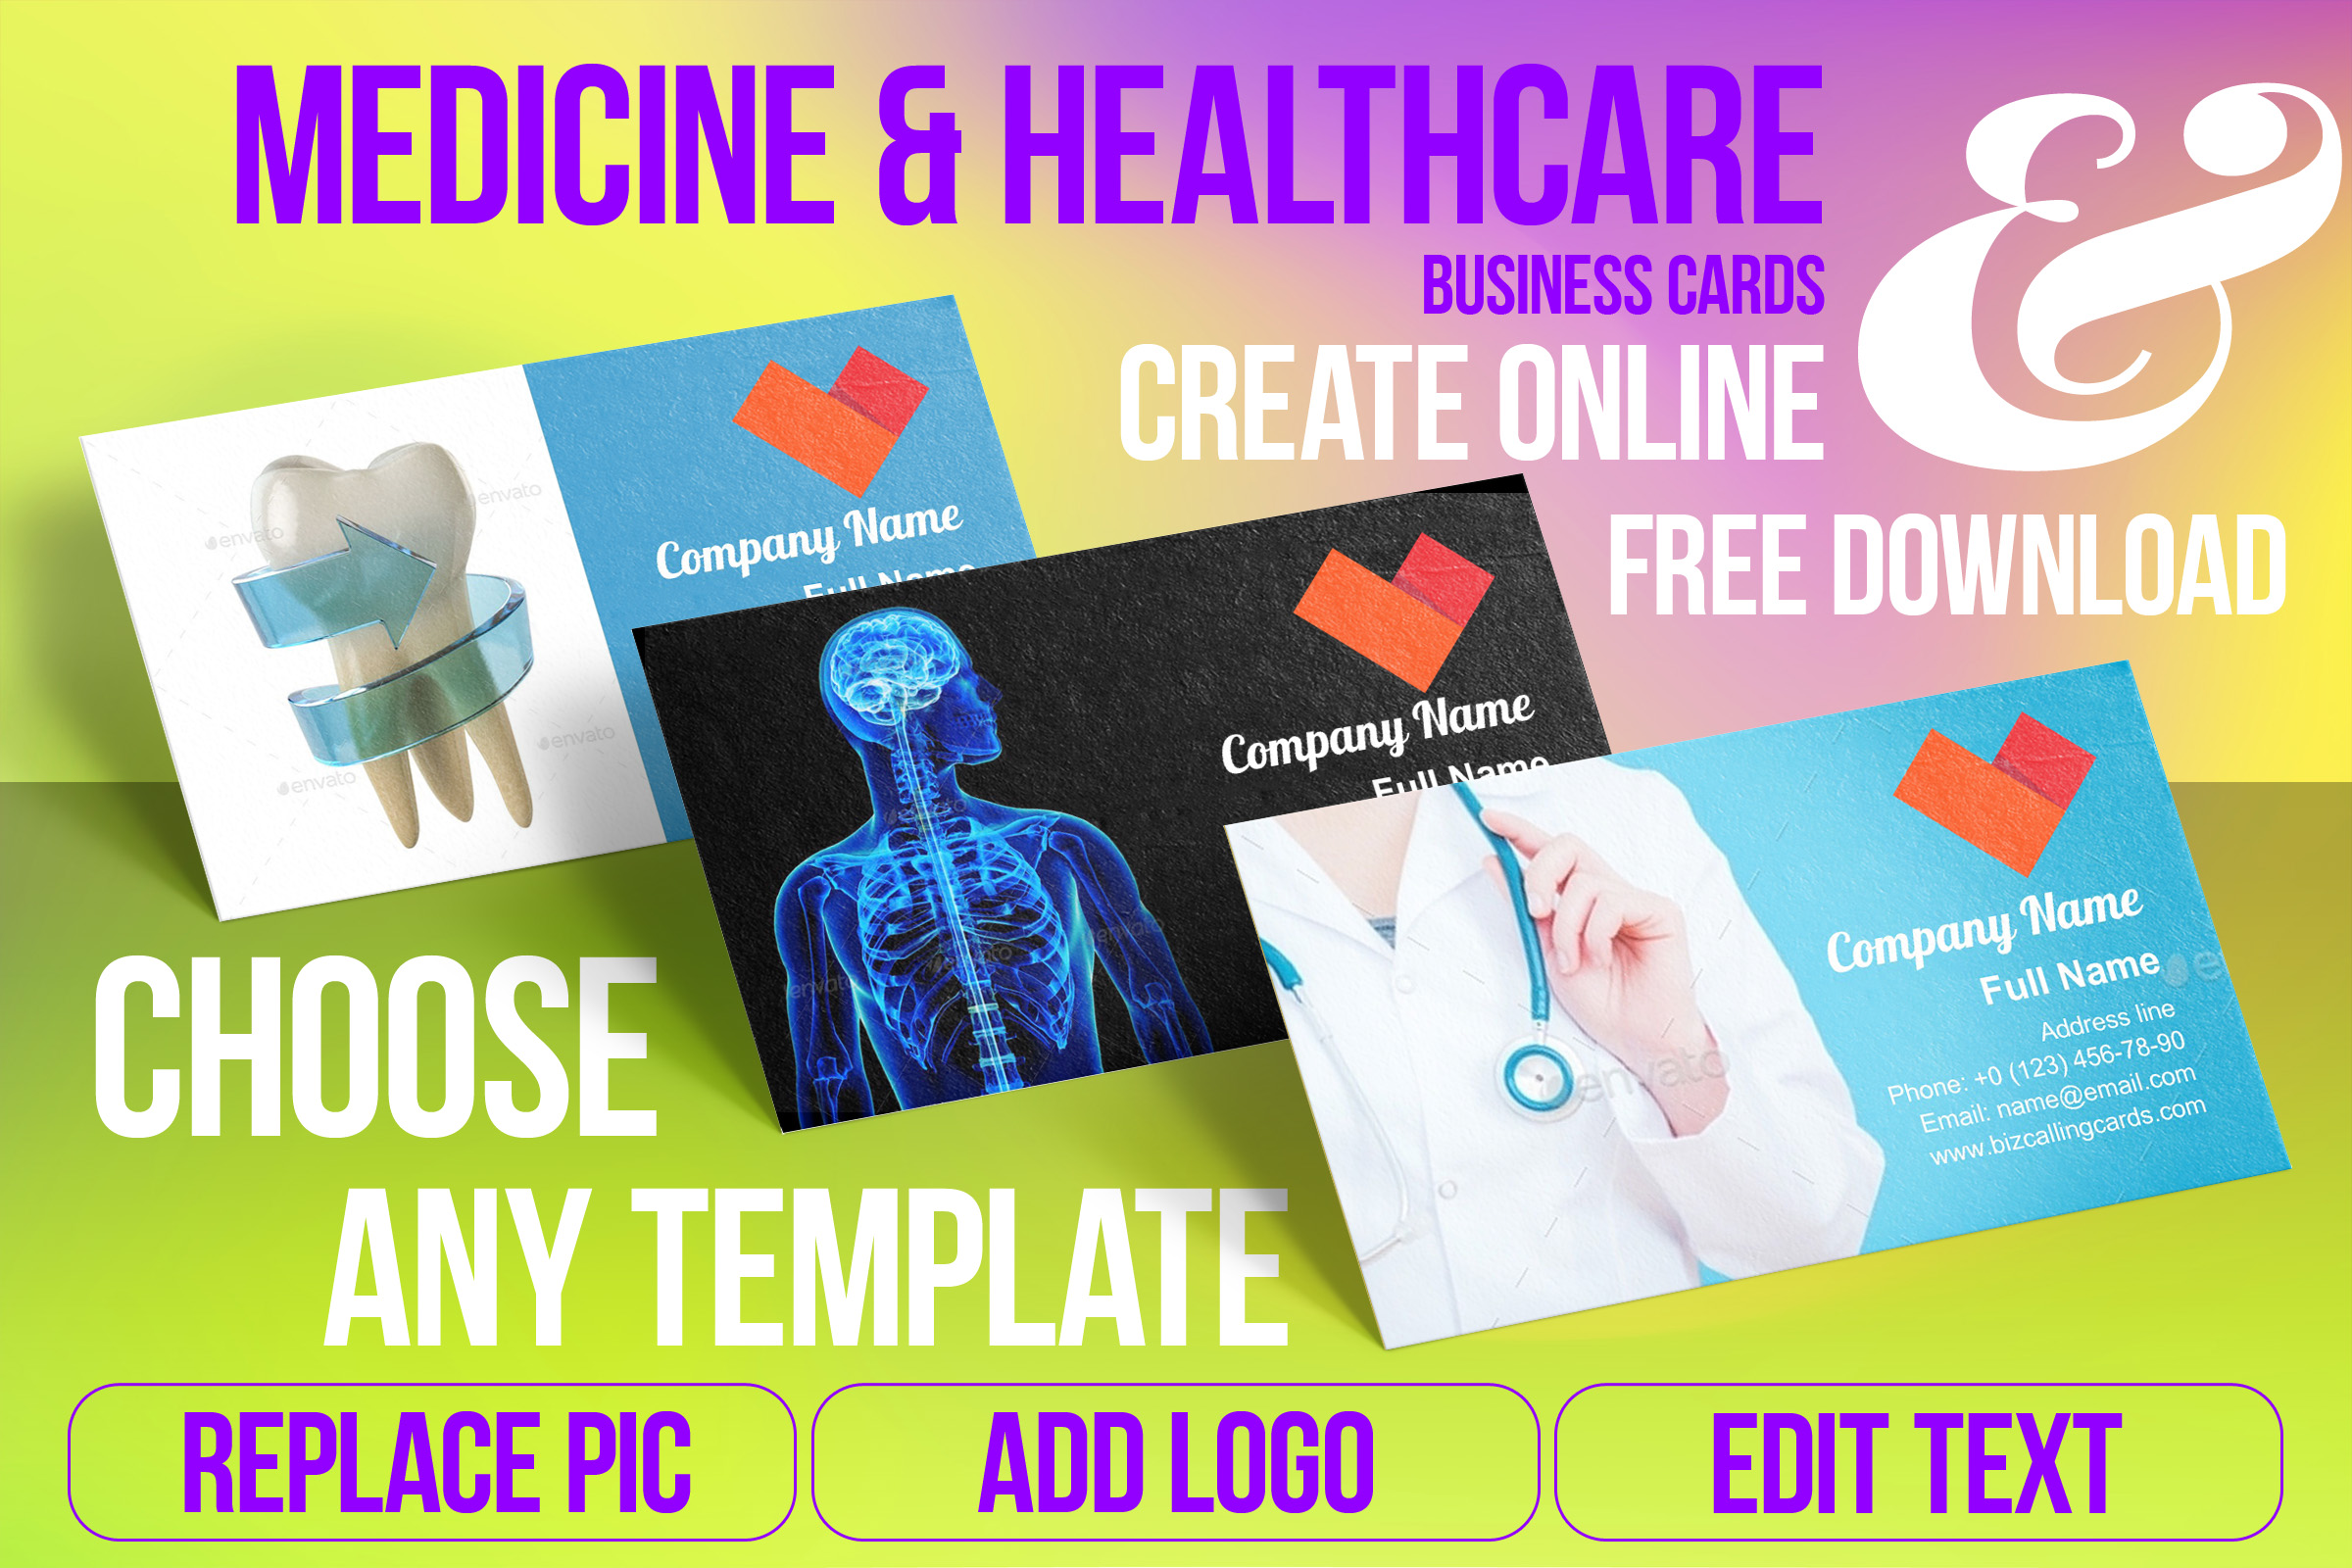 Business Card Templates For Medicine & Healthcare Free Download